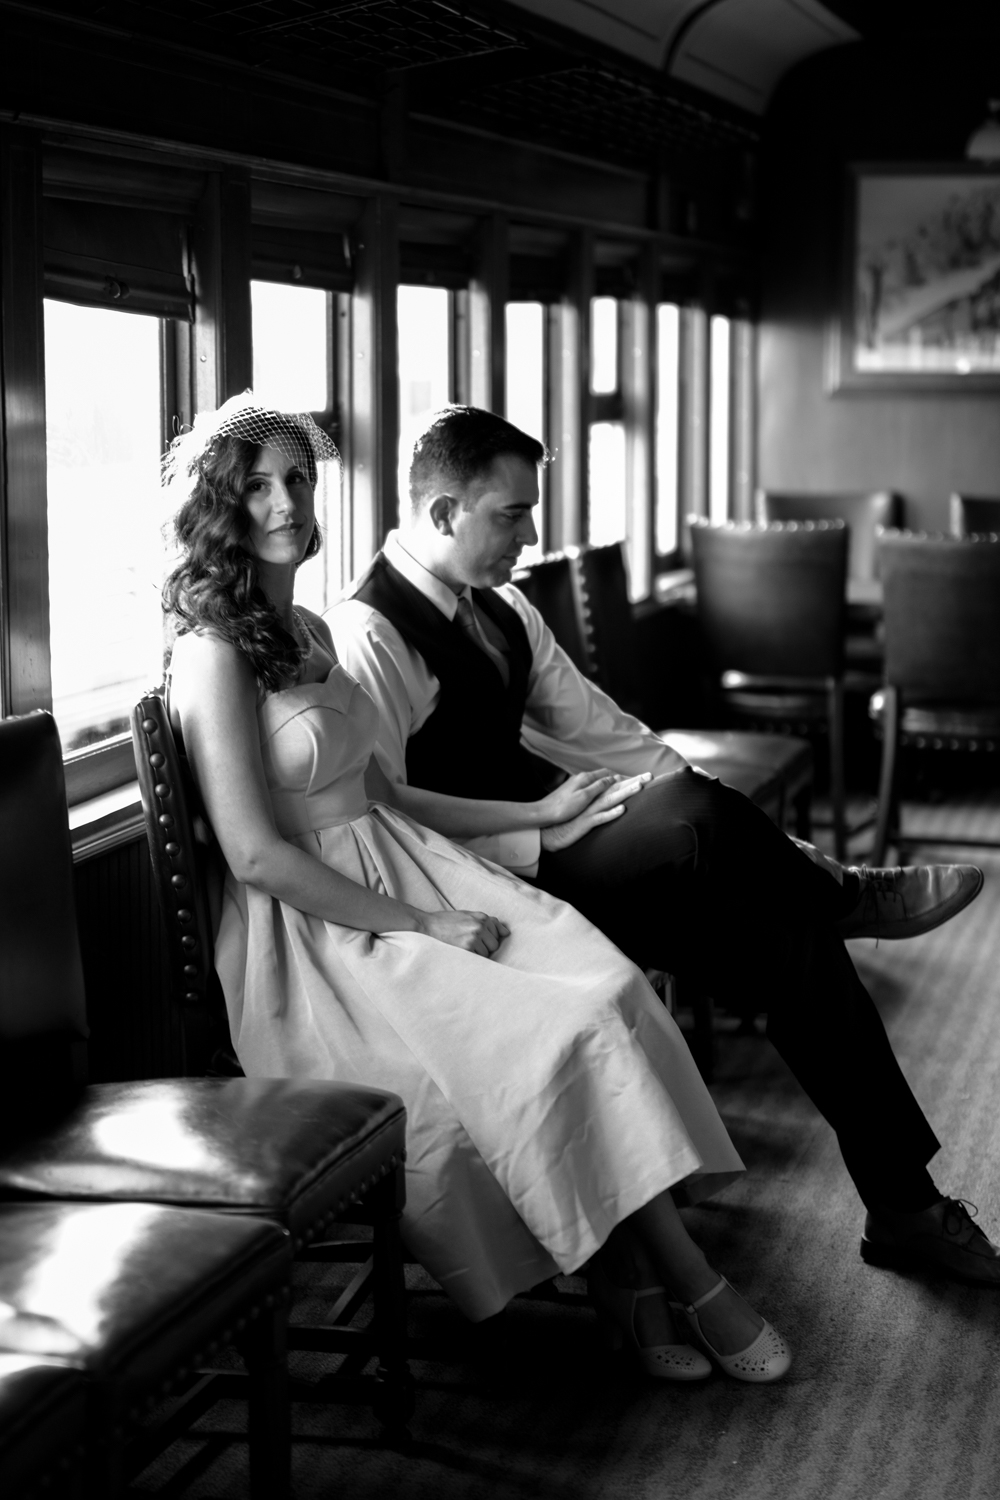 Michelle and Joe- Whippany Railway Musem 1950s Engagement - New Jersey -Olivia Christina Photography-39.jpg